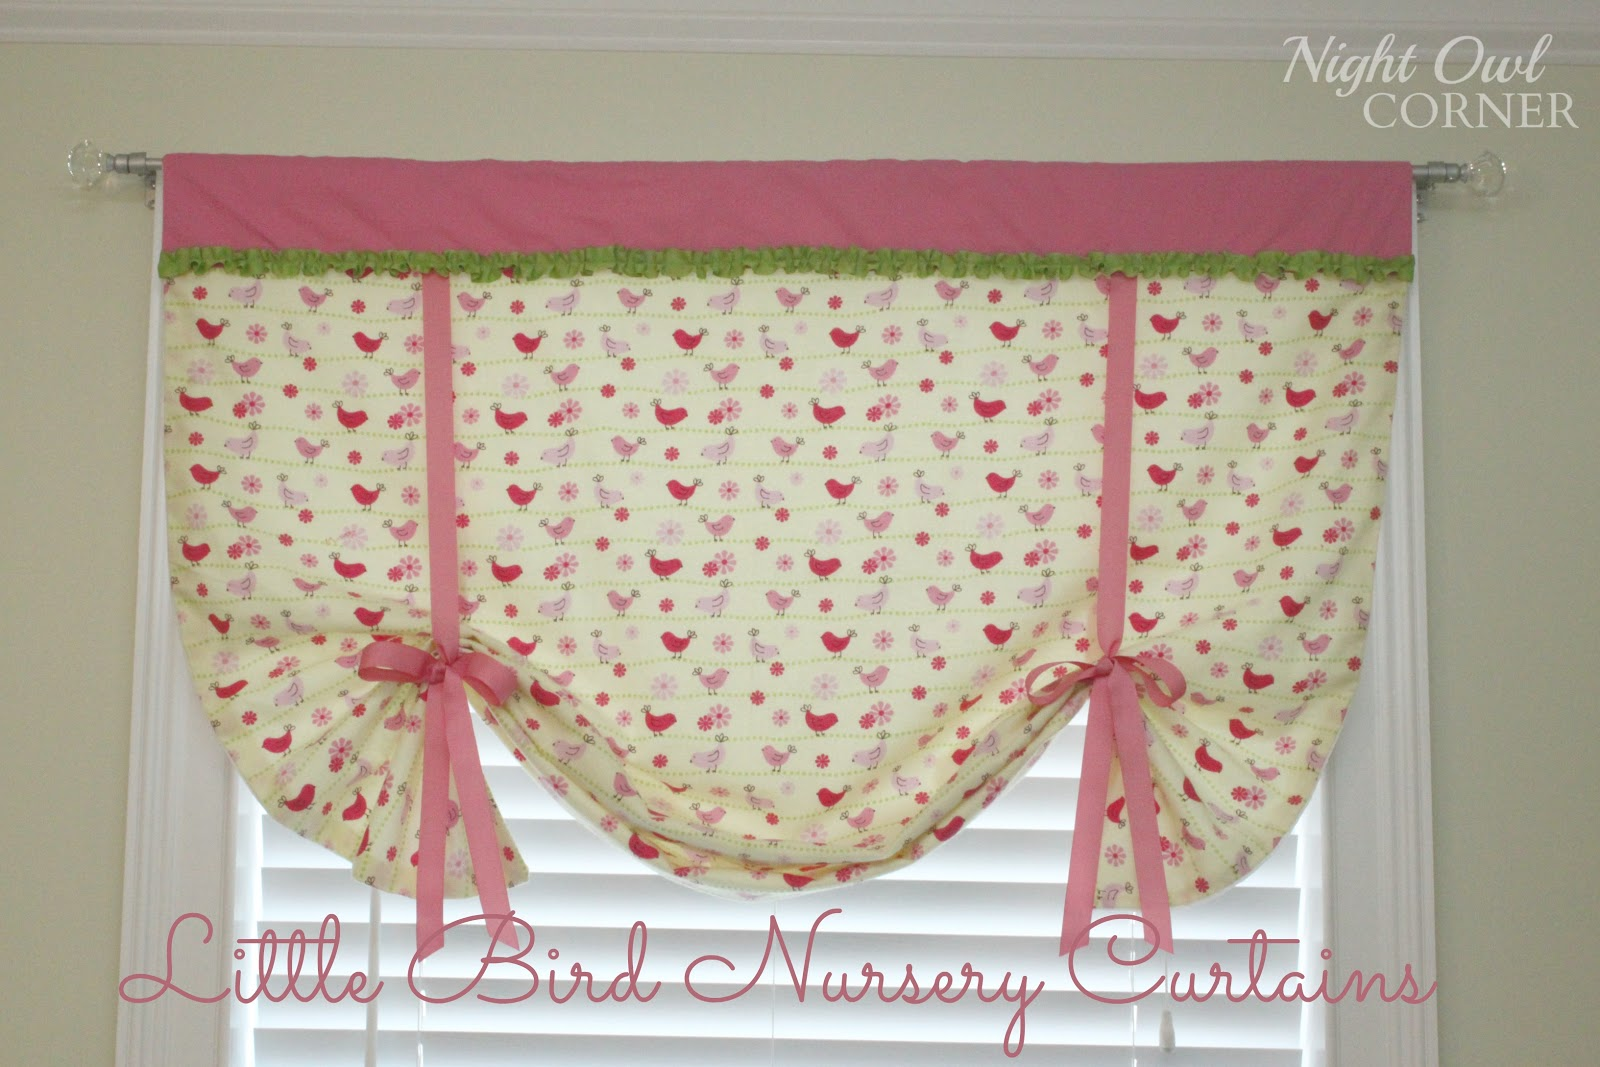 Night owl corner little bird nursery curtains for Curtain fabric for baby nursery